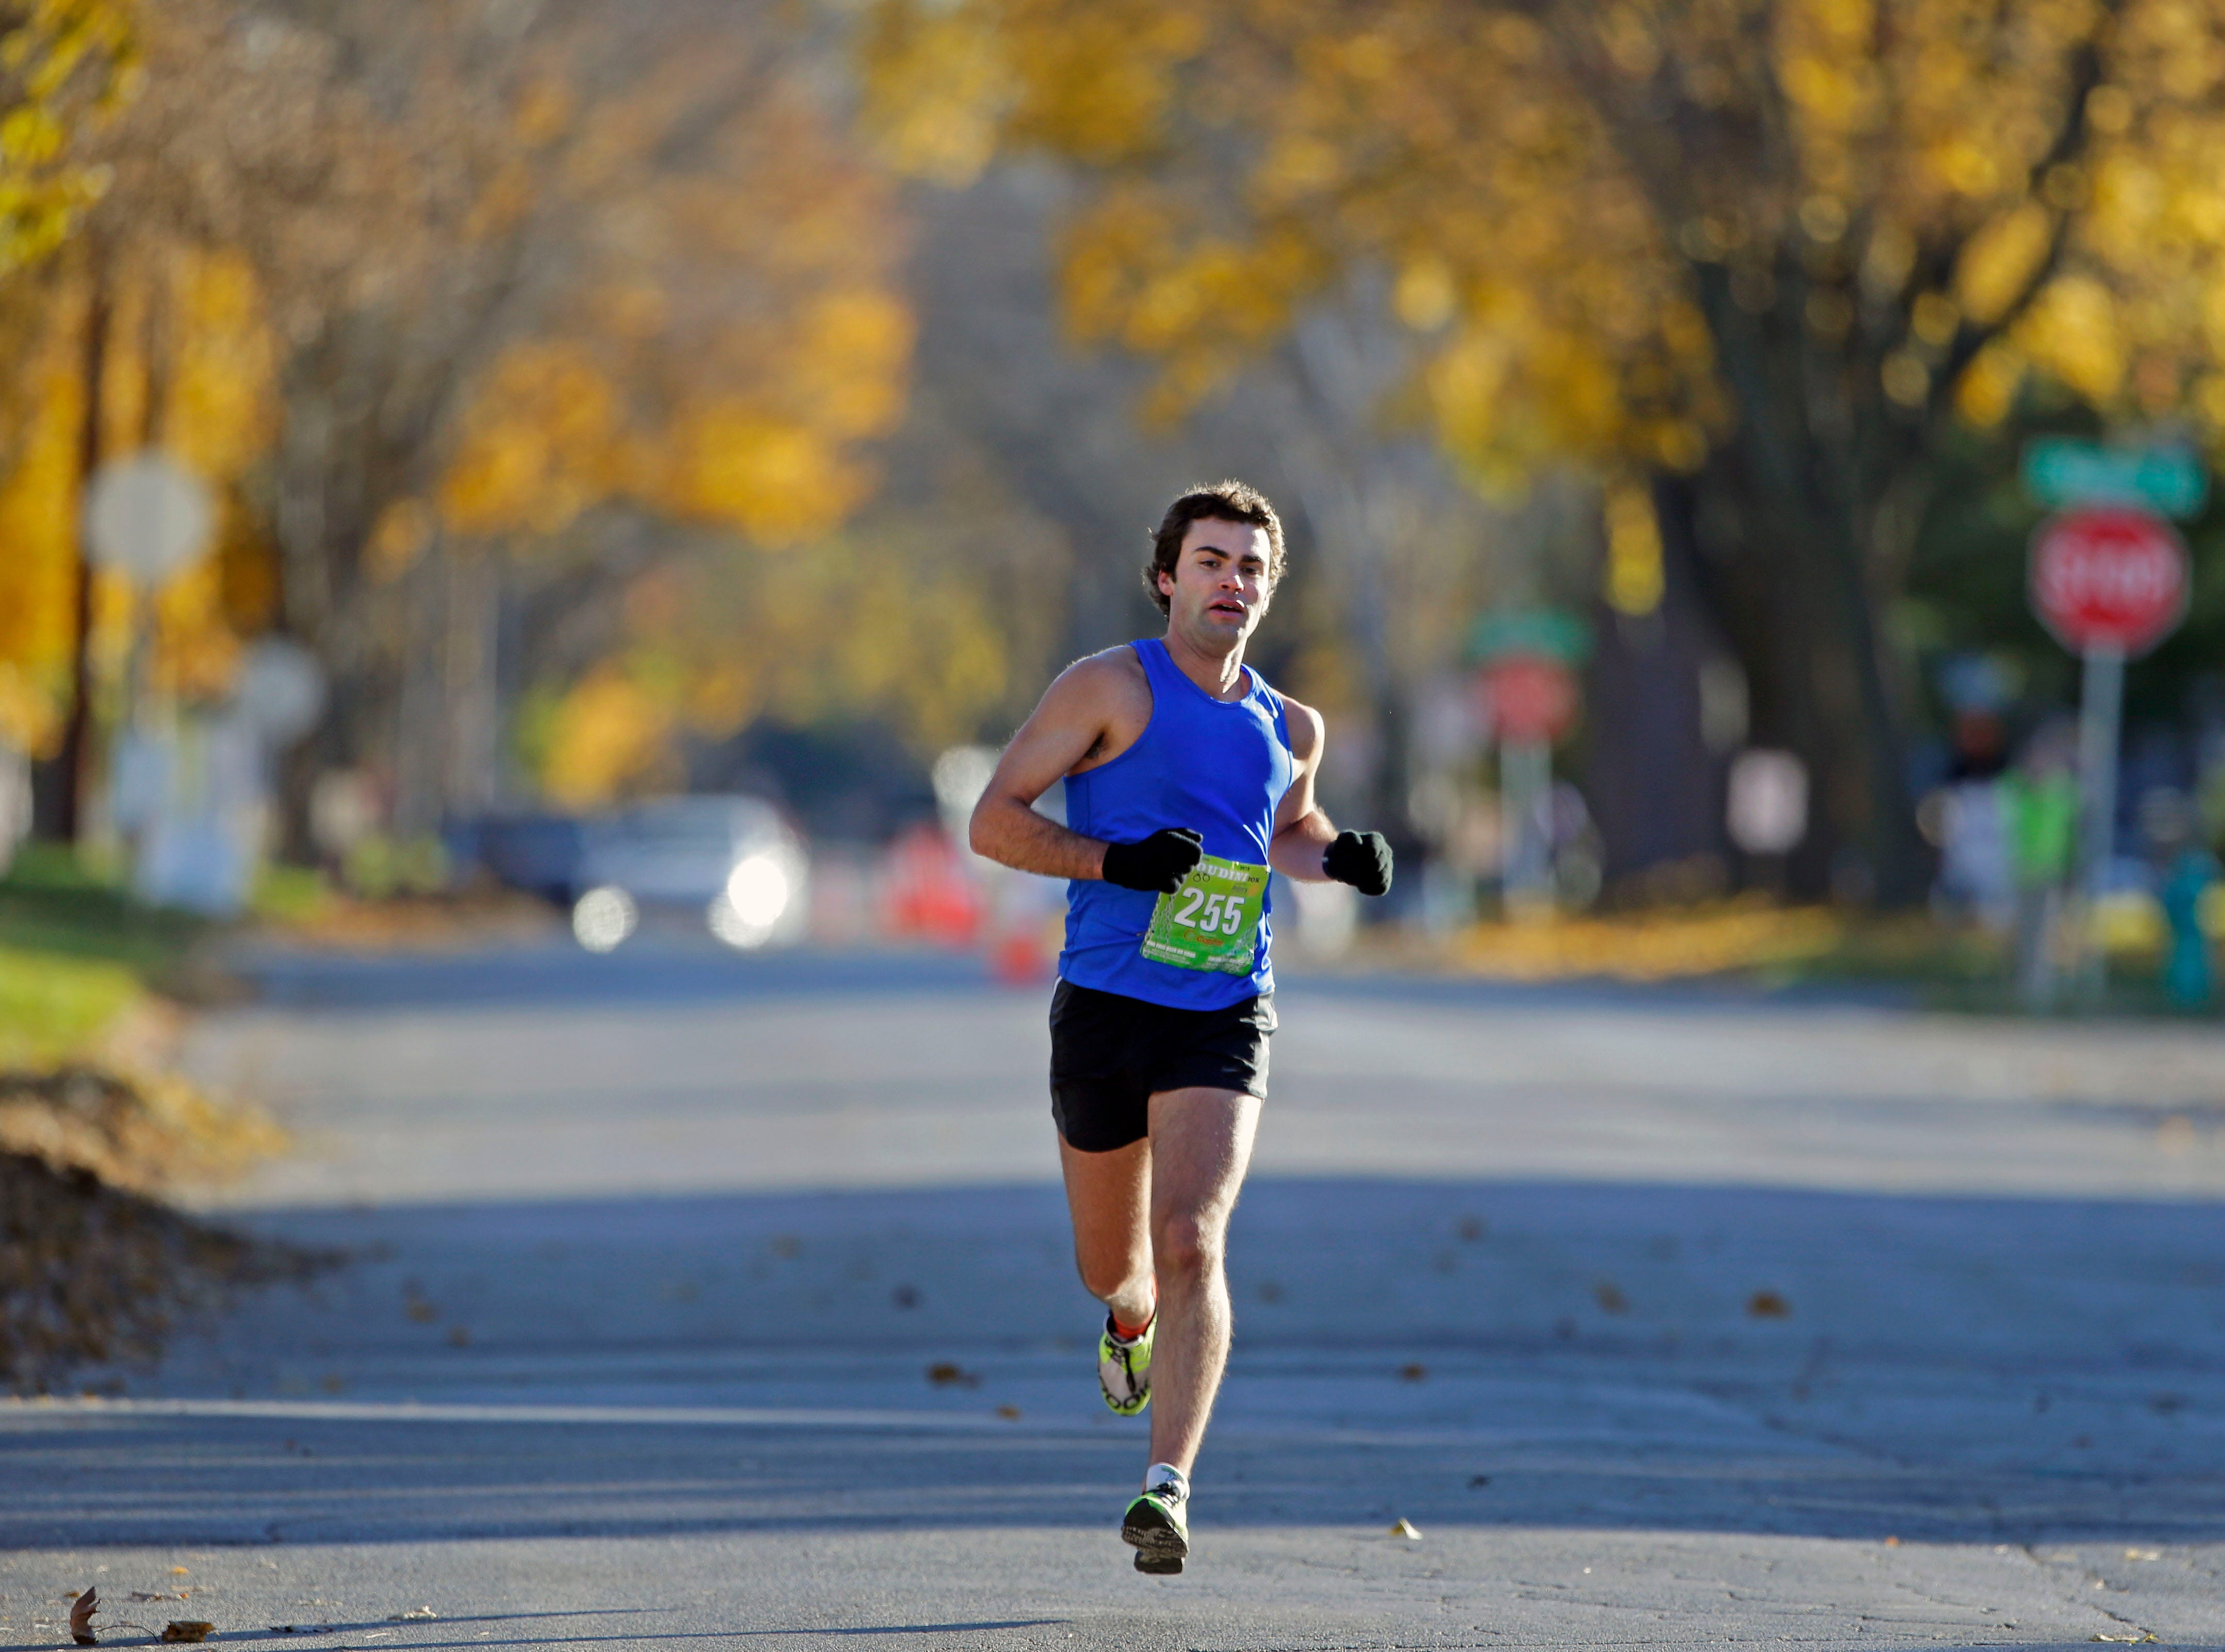 Mike Foust wins the 4th annual Appleton Houdini 10K Saturday, November 3, 2018, in Appleton, Wis.Ron Page/USA TODAY NETWORK-Wisconsin